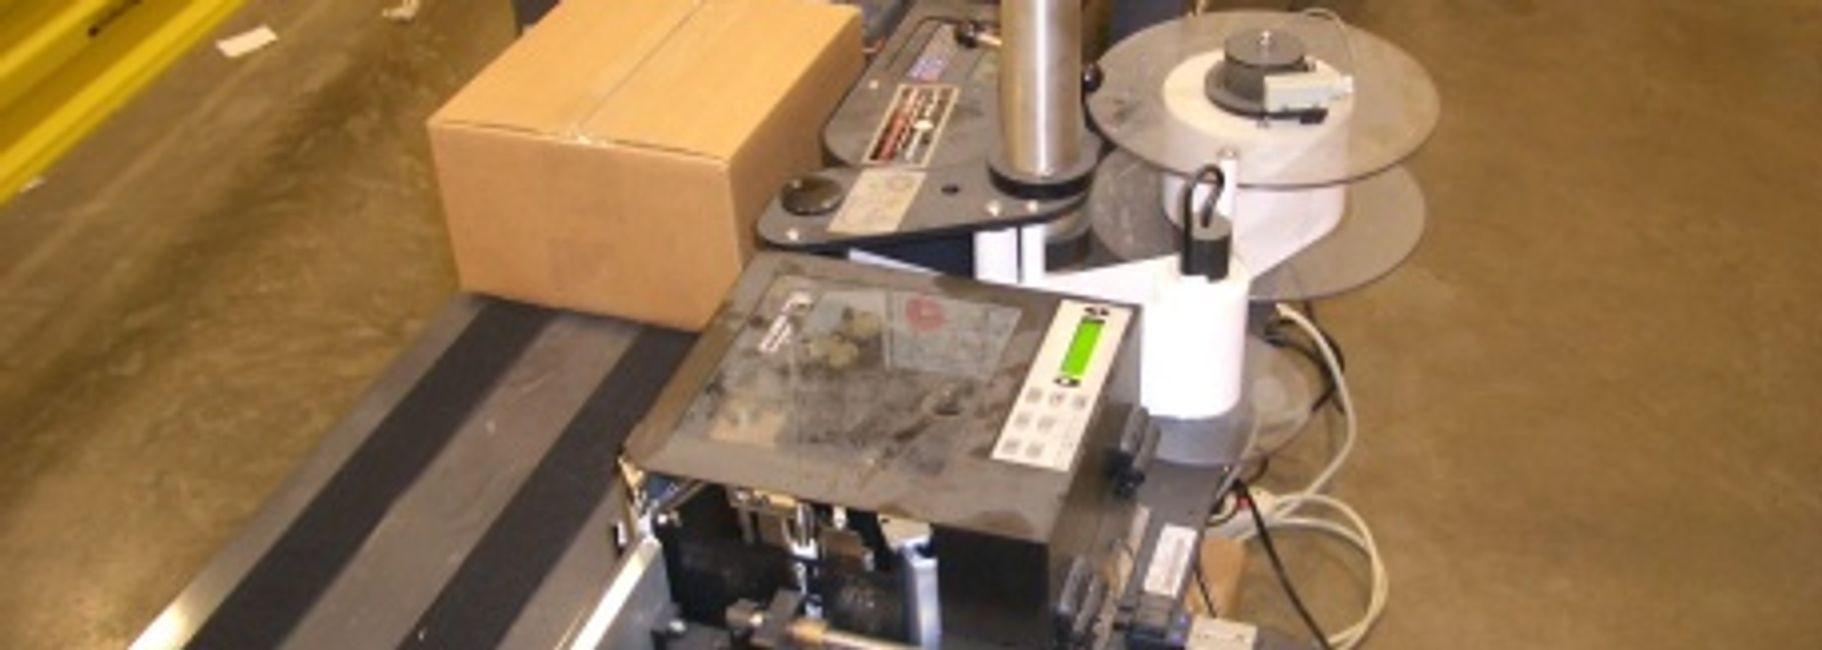 SPEDE Technologies Lineside Labeling - automates and  error-proofs packing and labeling processes